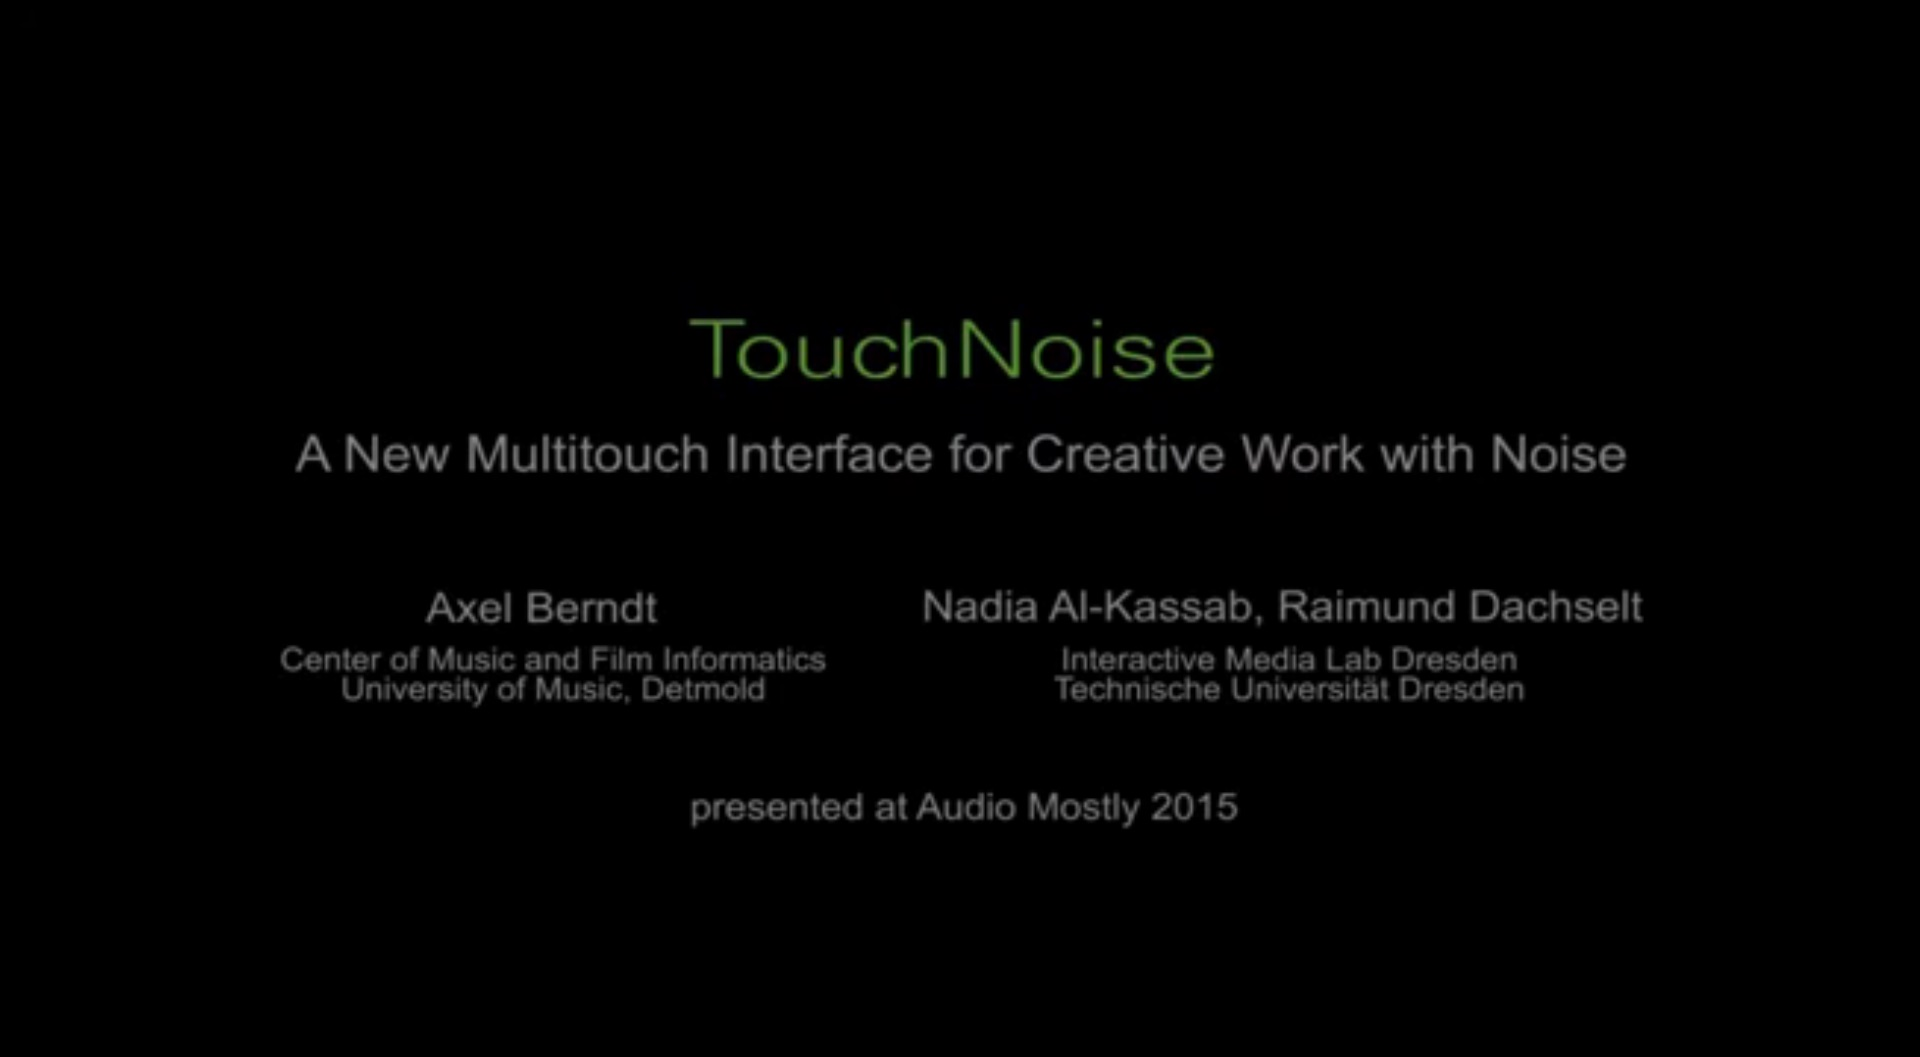 Full video of TouchNoise.